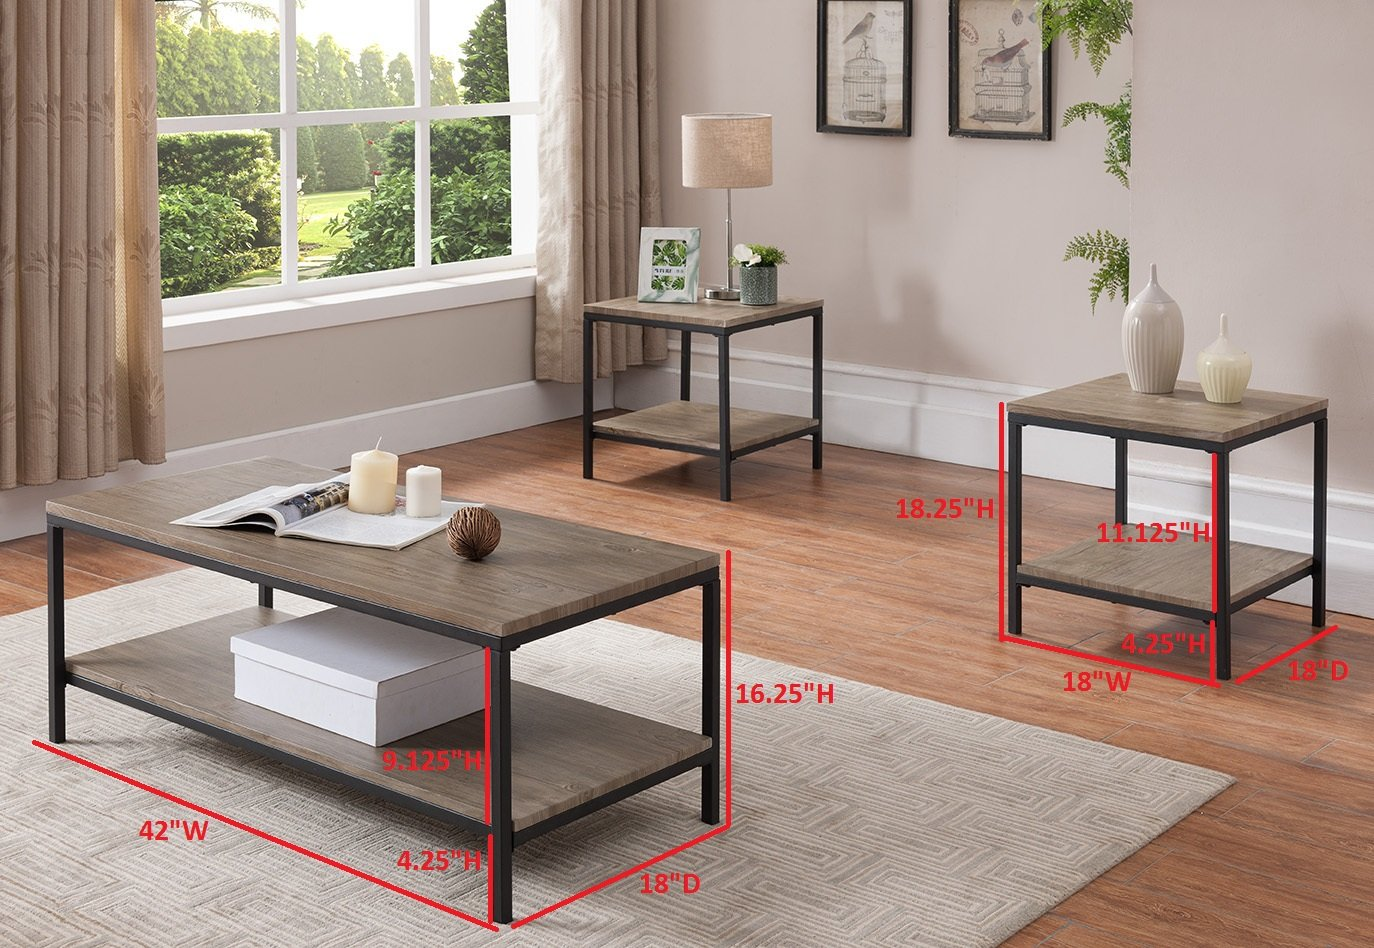 Kings Brand 3 Piece Gray / Black Occasional Table Set, Coffee Table & 2 End Tables by Kings Brand Furniture (Image #2)